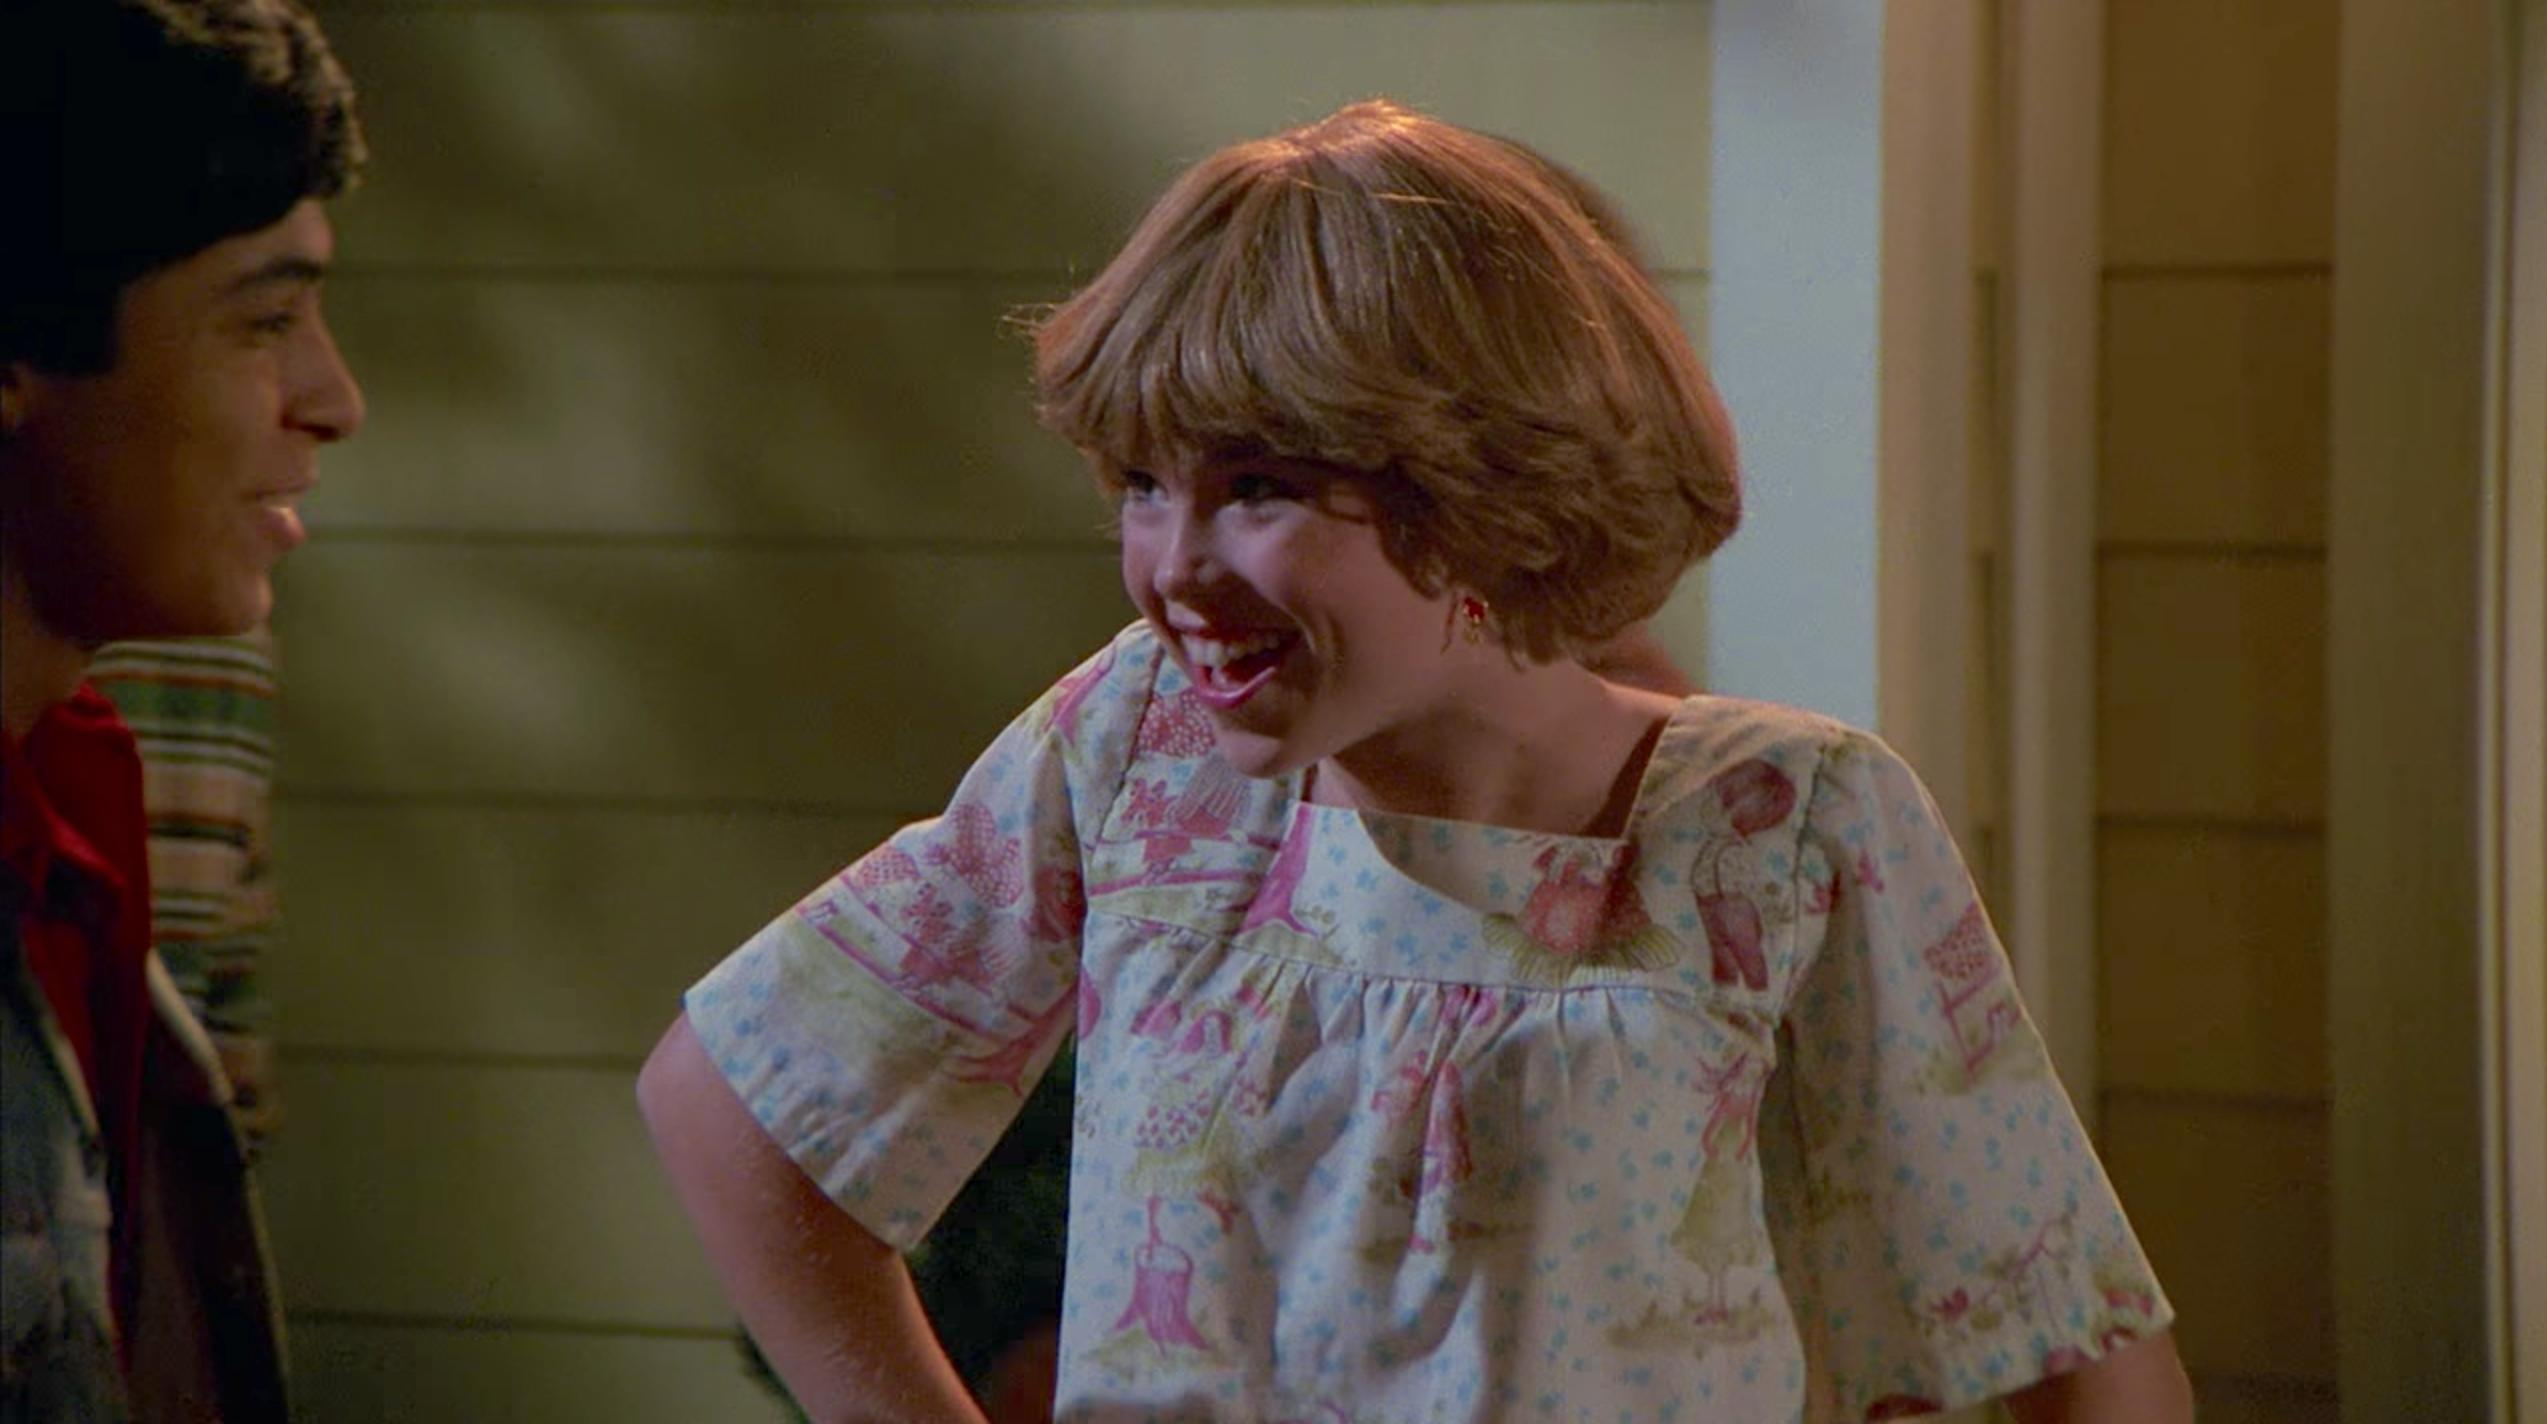 When Donna's little sister, Tina Pinciotti, vanished mysteriously in That 70s Show.